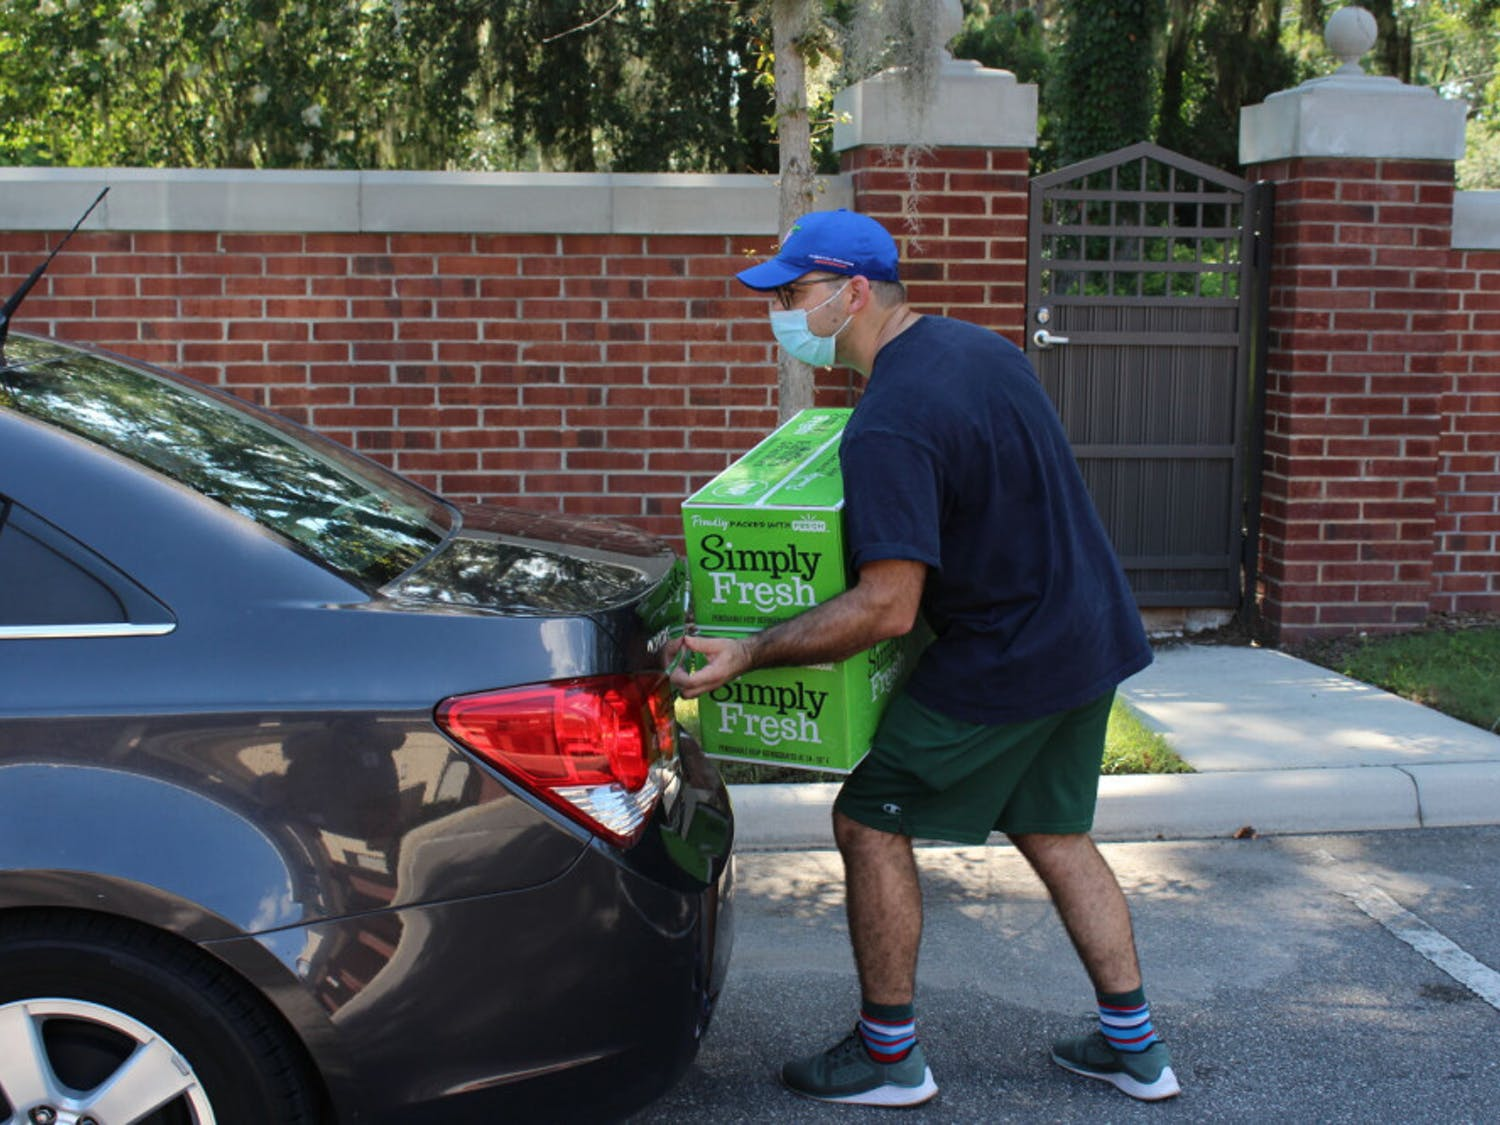 Hanan Walters, a recent University of Florida graduate with a degree in economics, loads boxes into the trunk of a car. Walters is an active member of the Lubavitch Chabad Jewish Center of Gainesville and frequented the weekly Friday dinners, and spent the afternoon of July 16 volunteering to haul boxes and direct traffic at the drive-through food drive.